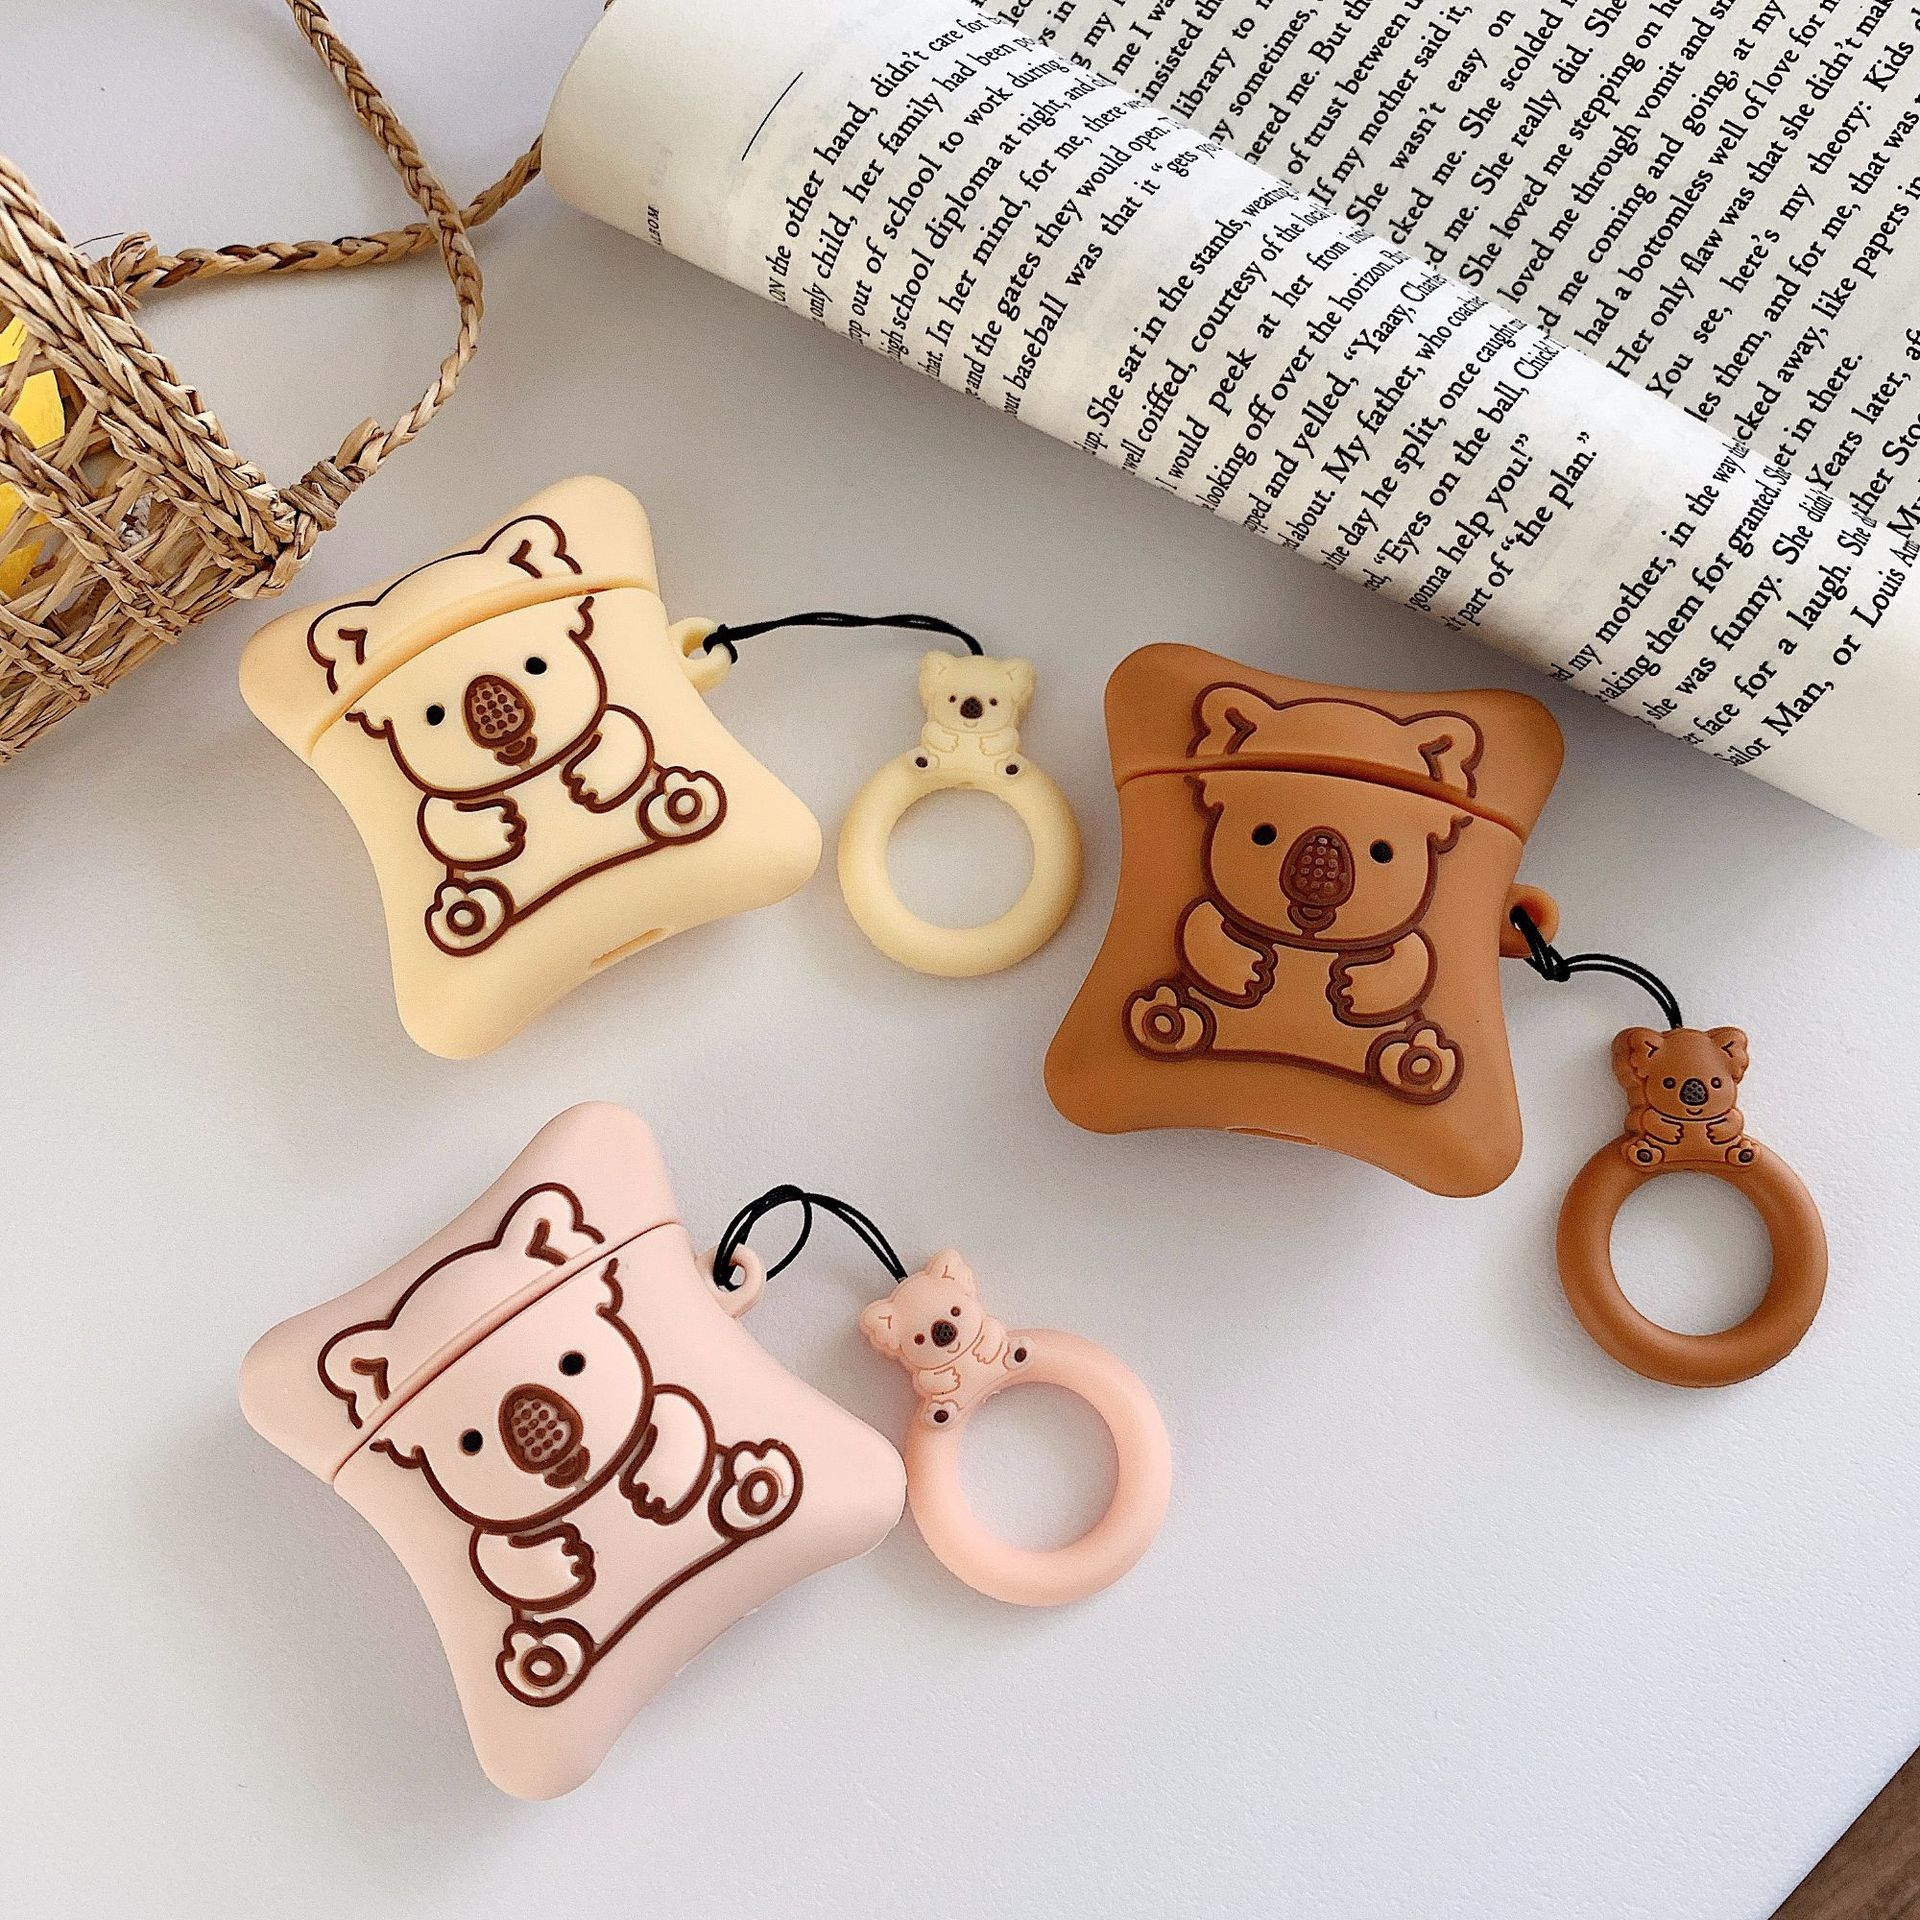 US $1 04 OFF For Airpods 2 Case Silicone Koala Cookies Cartoon Cover for Apple Air pods Cute Headphone Earphone Case for Earpods Ring Strap in